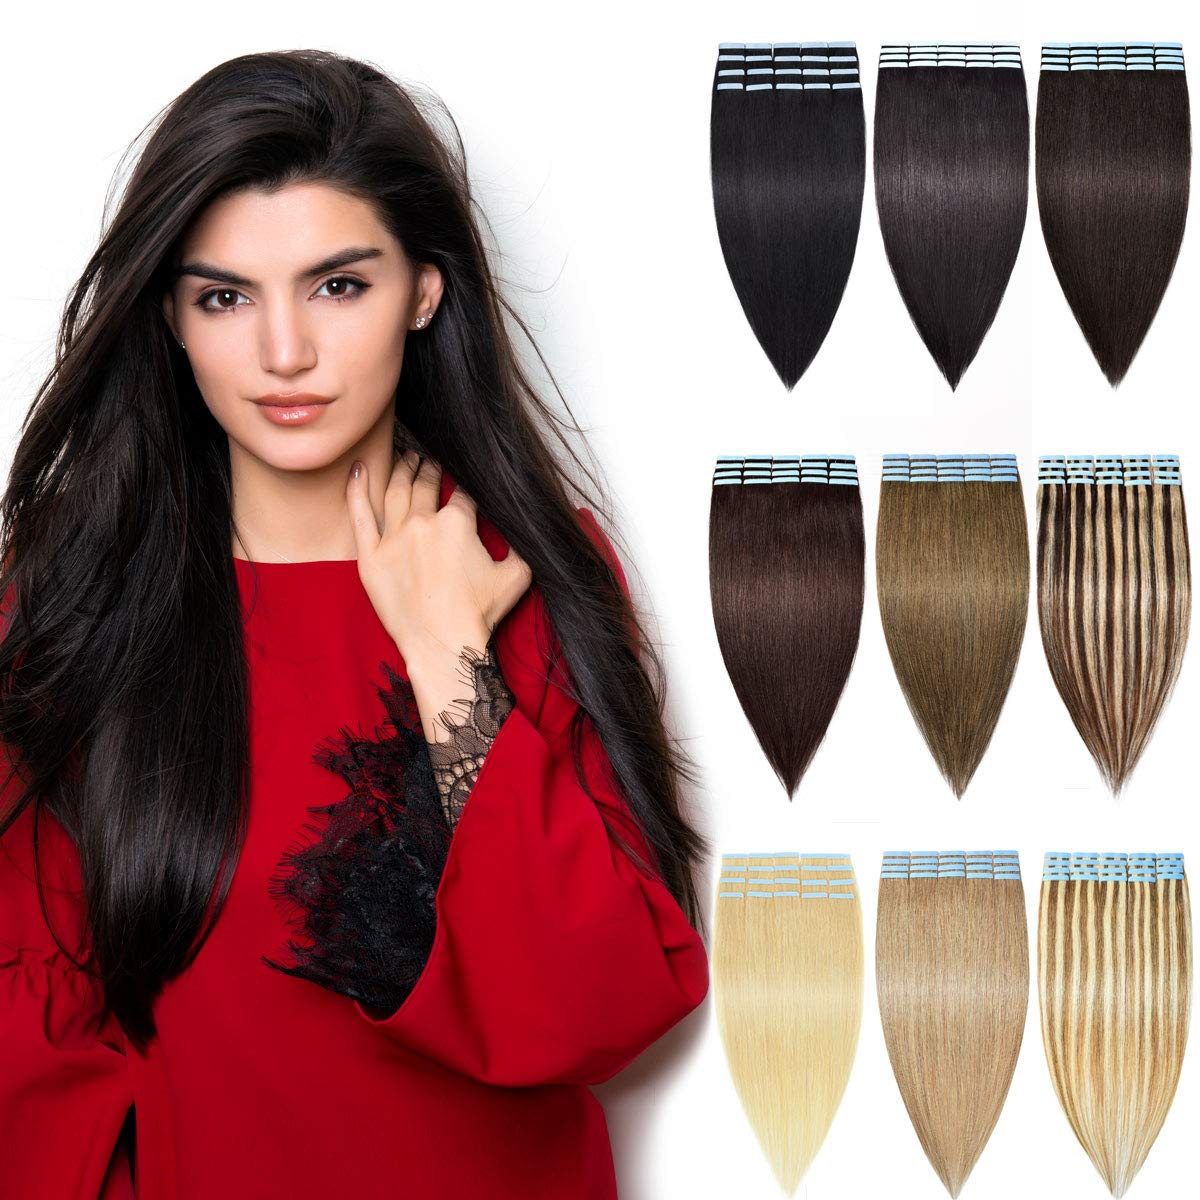 DILUSILK Tape in Hair Extensions Human Hair 100% Remy Hair 20pcs 50g Seamless Skin Weft 22 inch #1 Jet Black